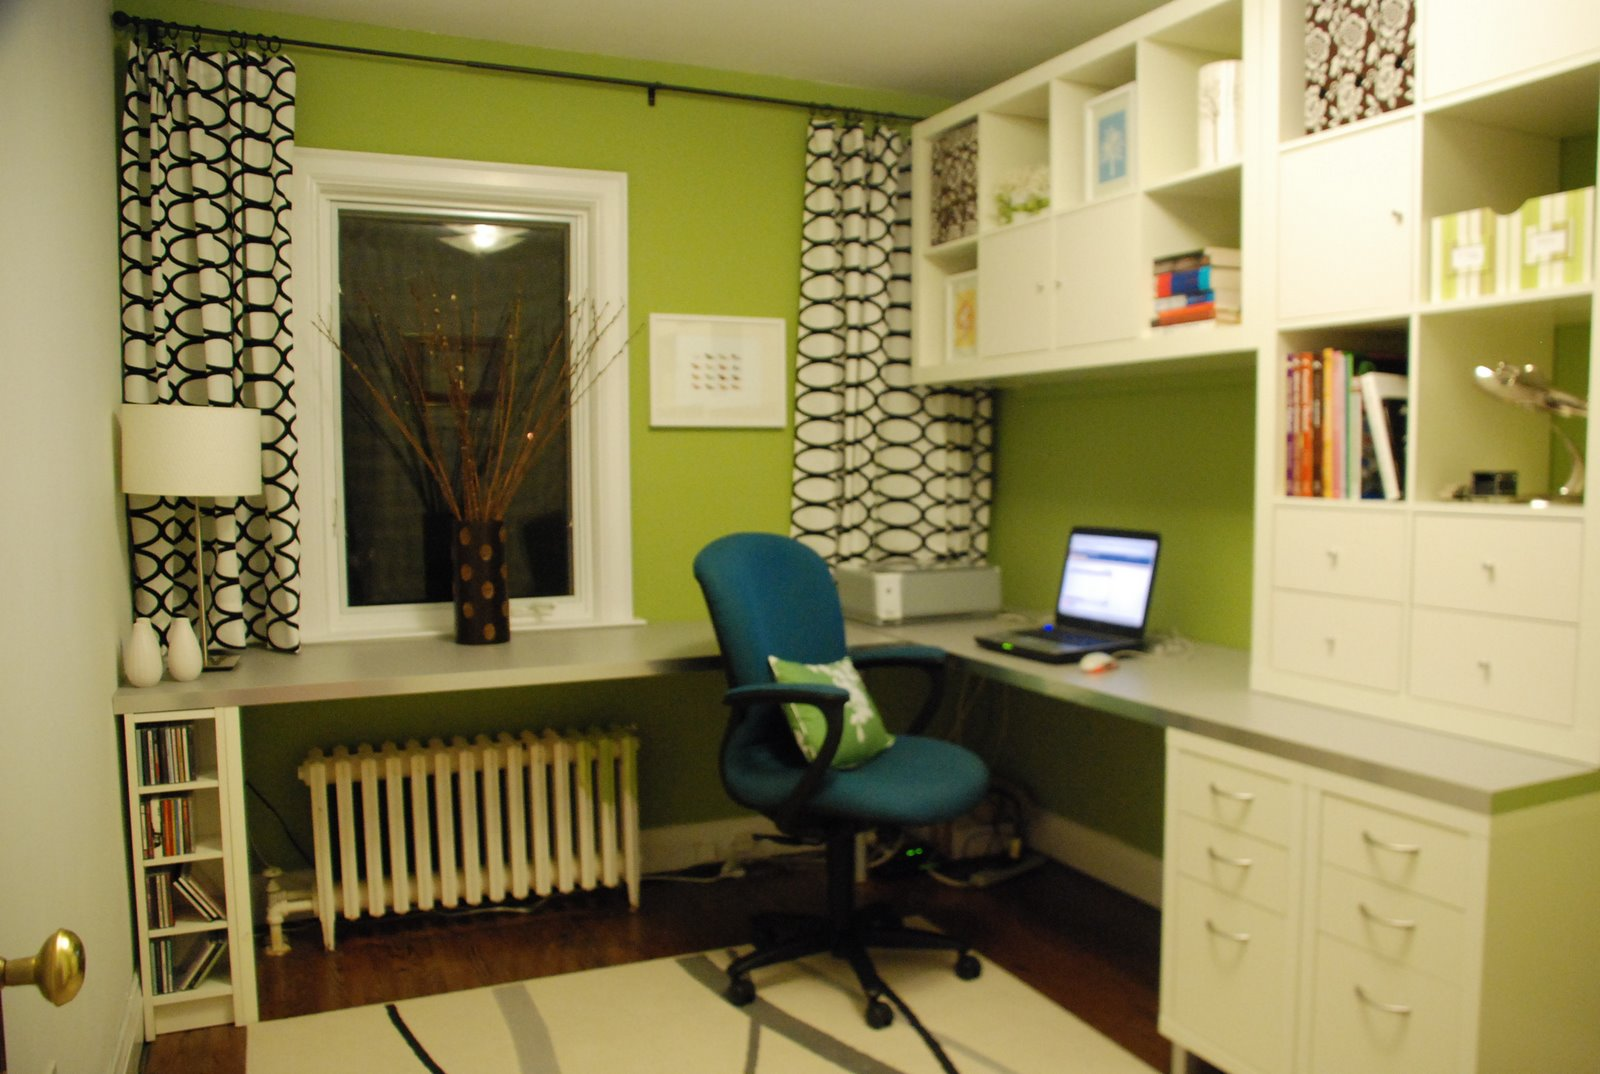 C a y l a w r a l: Teen workstation IKEA hack from start to finish